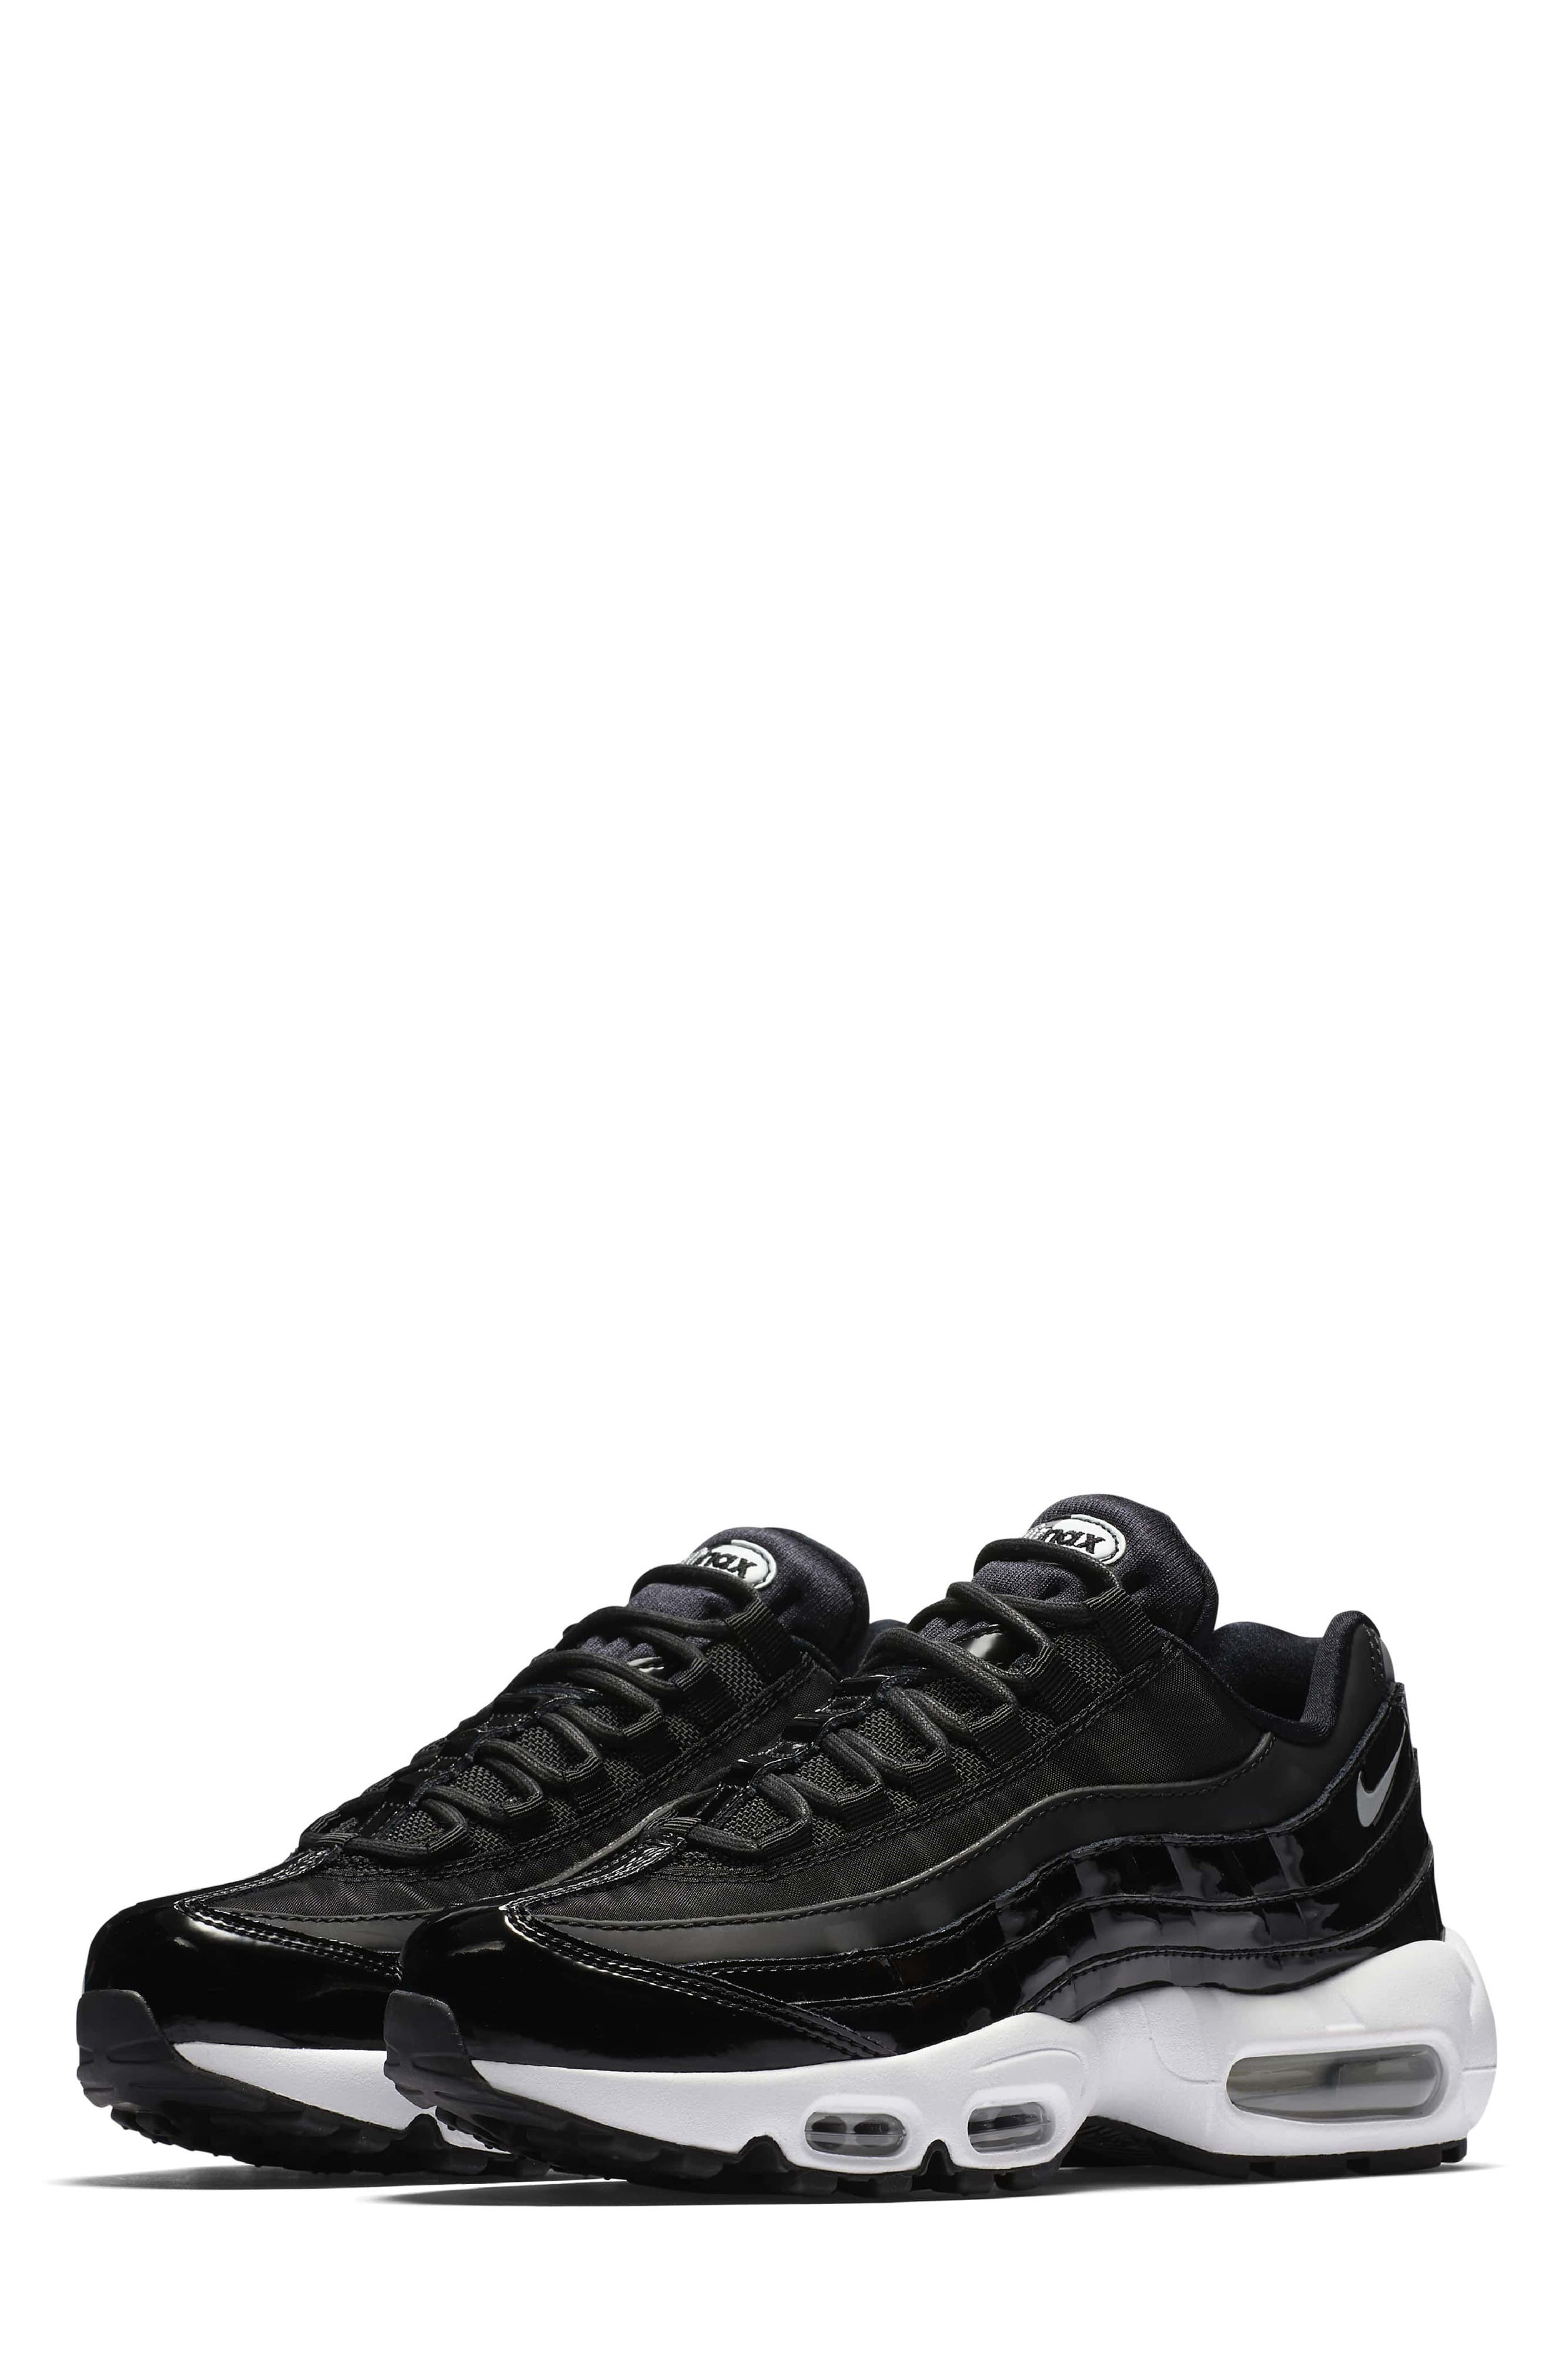 Main Image - Nike Air Max 95 Special Edition Running Shoe (Women)